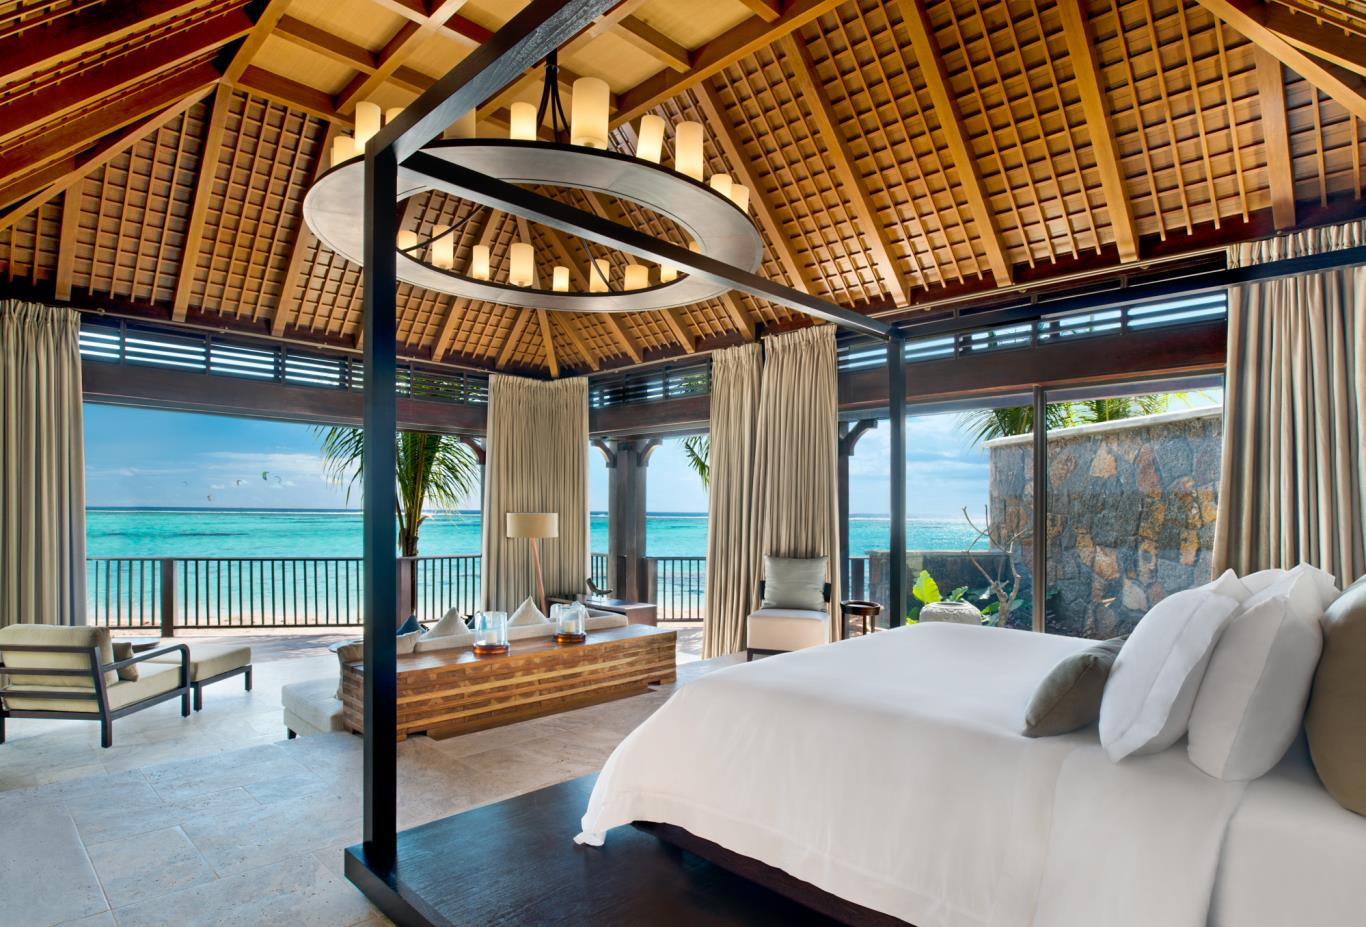 The St Regis Villa master bedroom with view